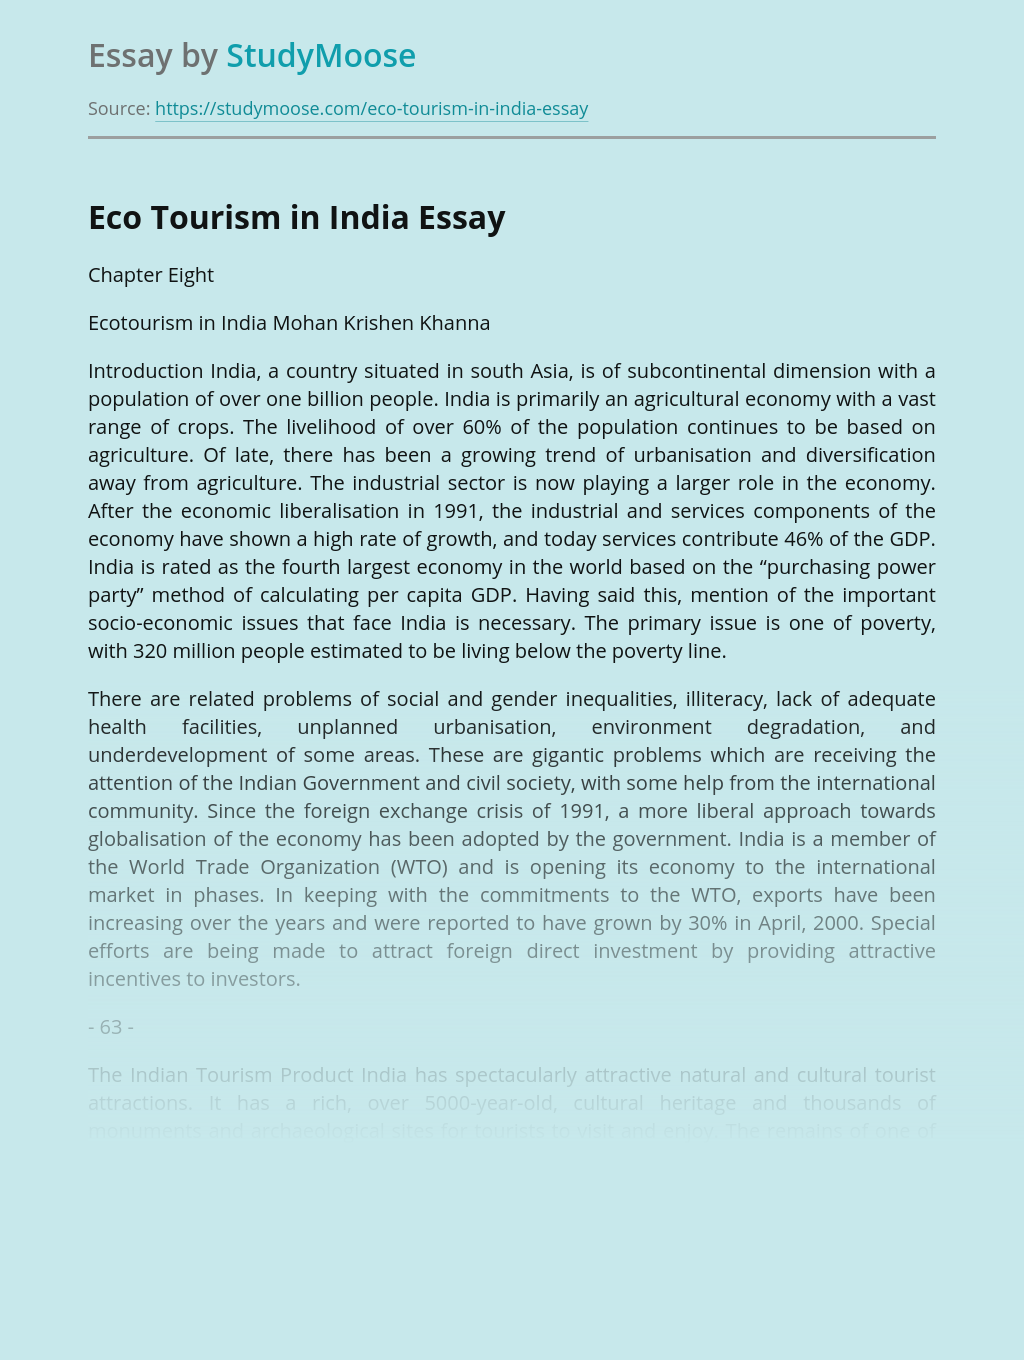 Essay on eco tourism in india top report ghostwriting websites for phd